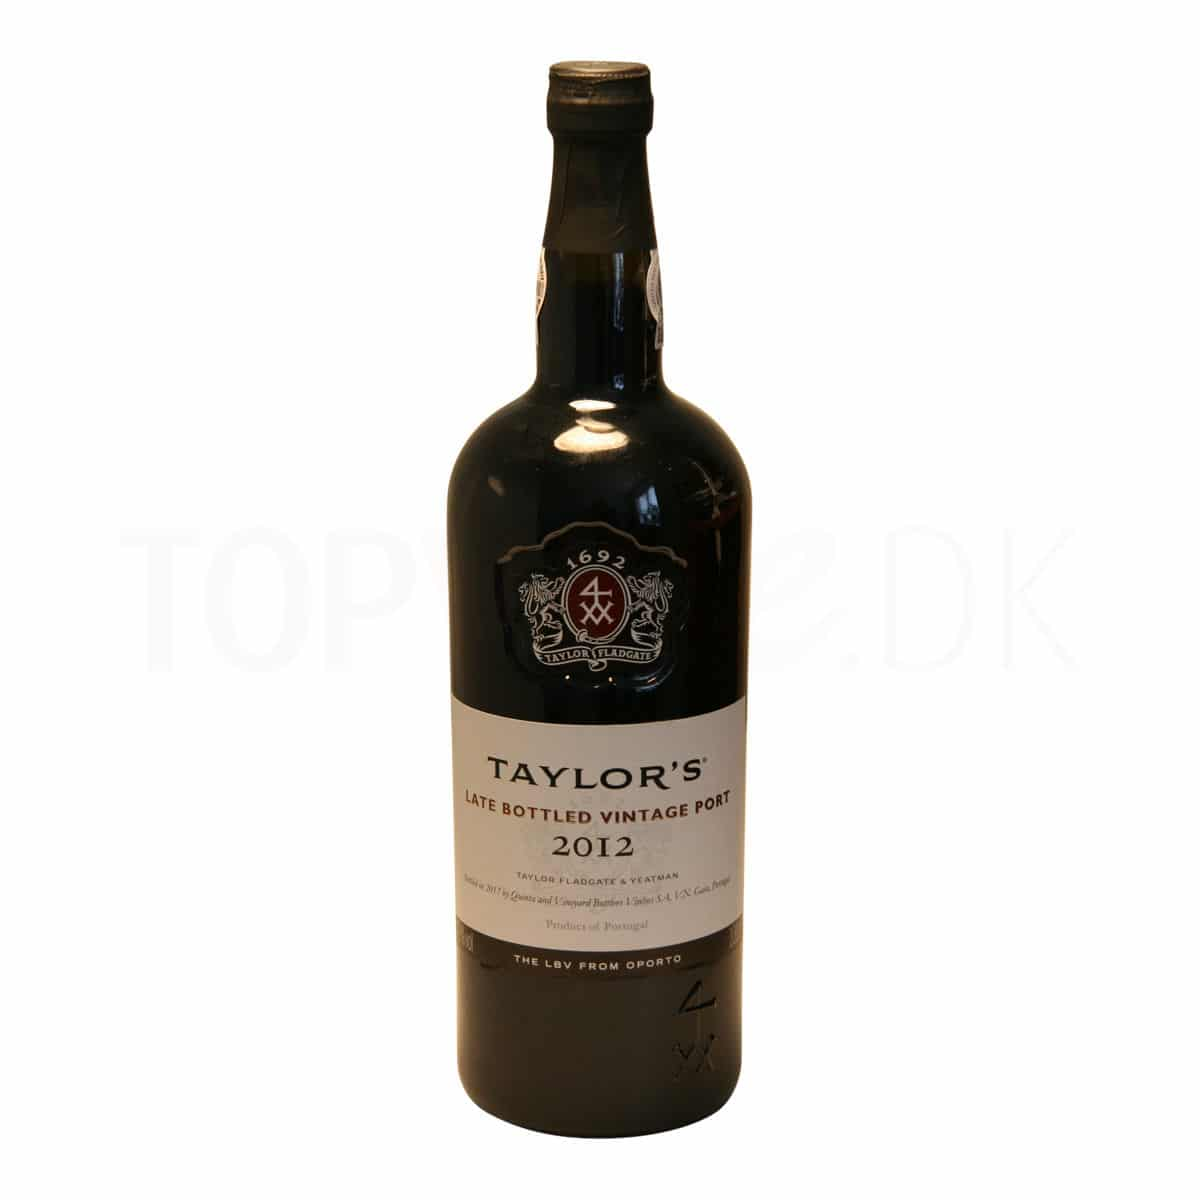 Topvine Taylors Late bottle vintage 2012 - 1 l